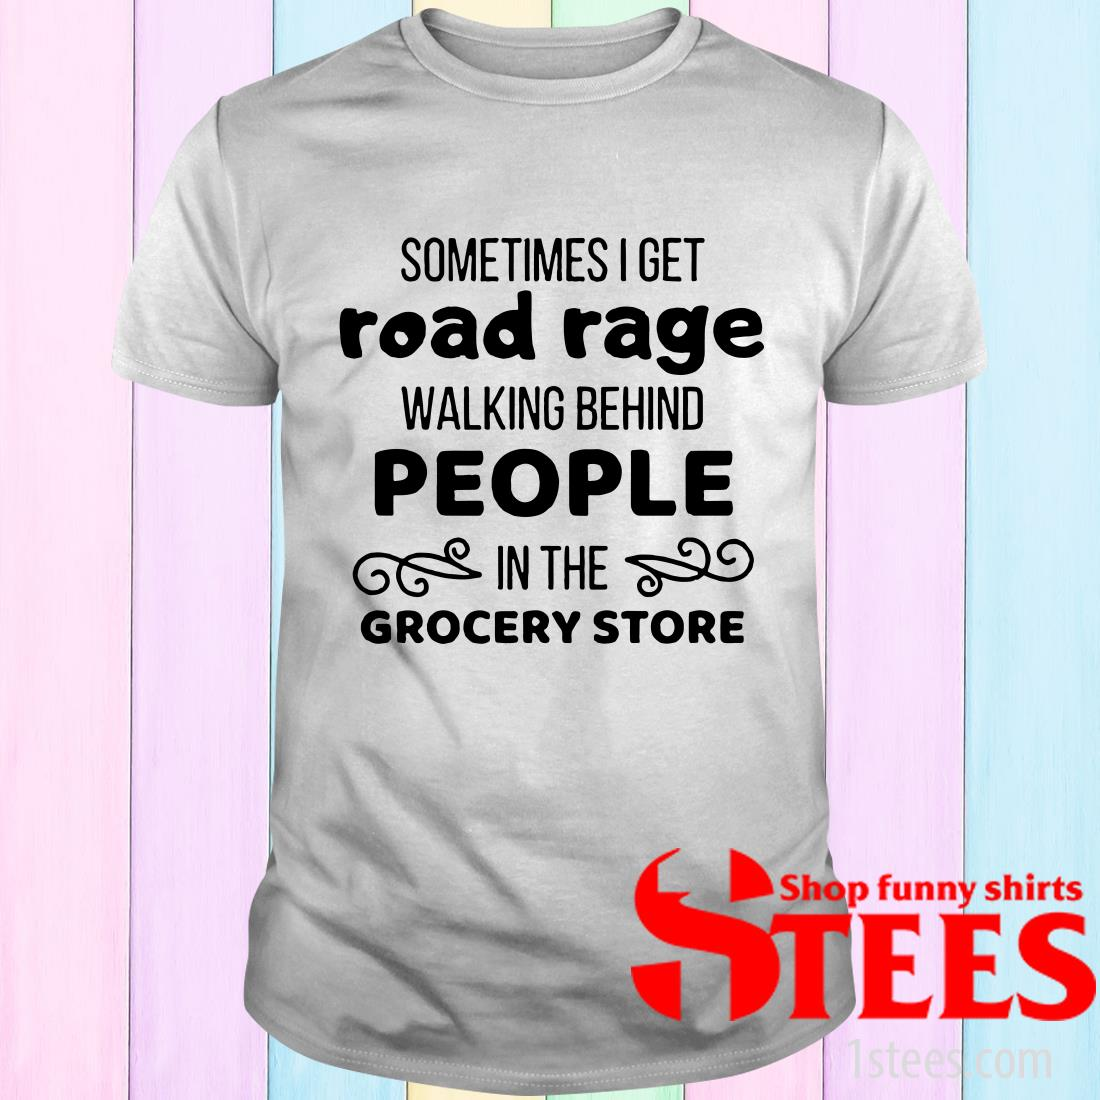 Sometimes I Get Road Rage In The Grocery Store T-Shirt